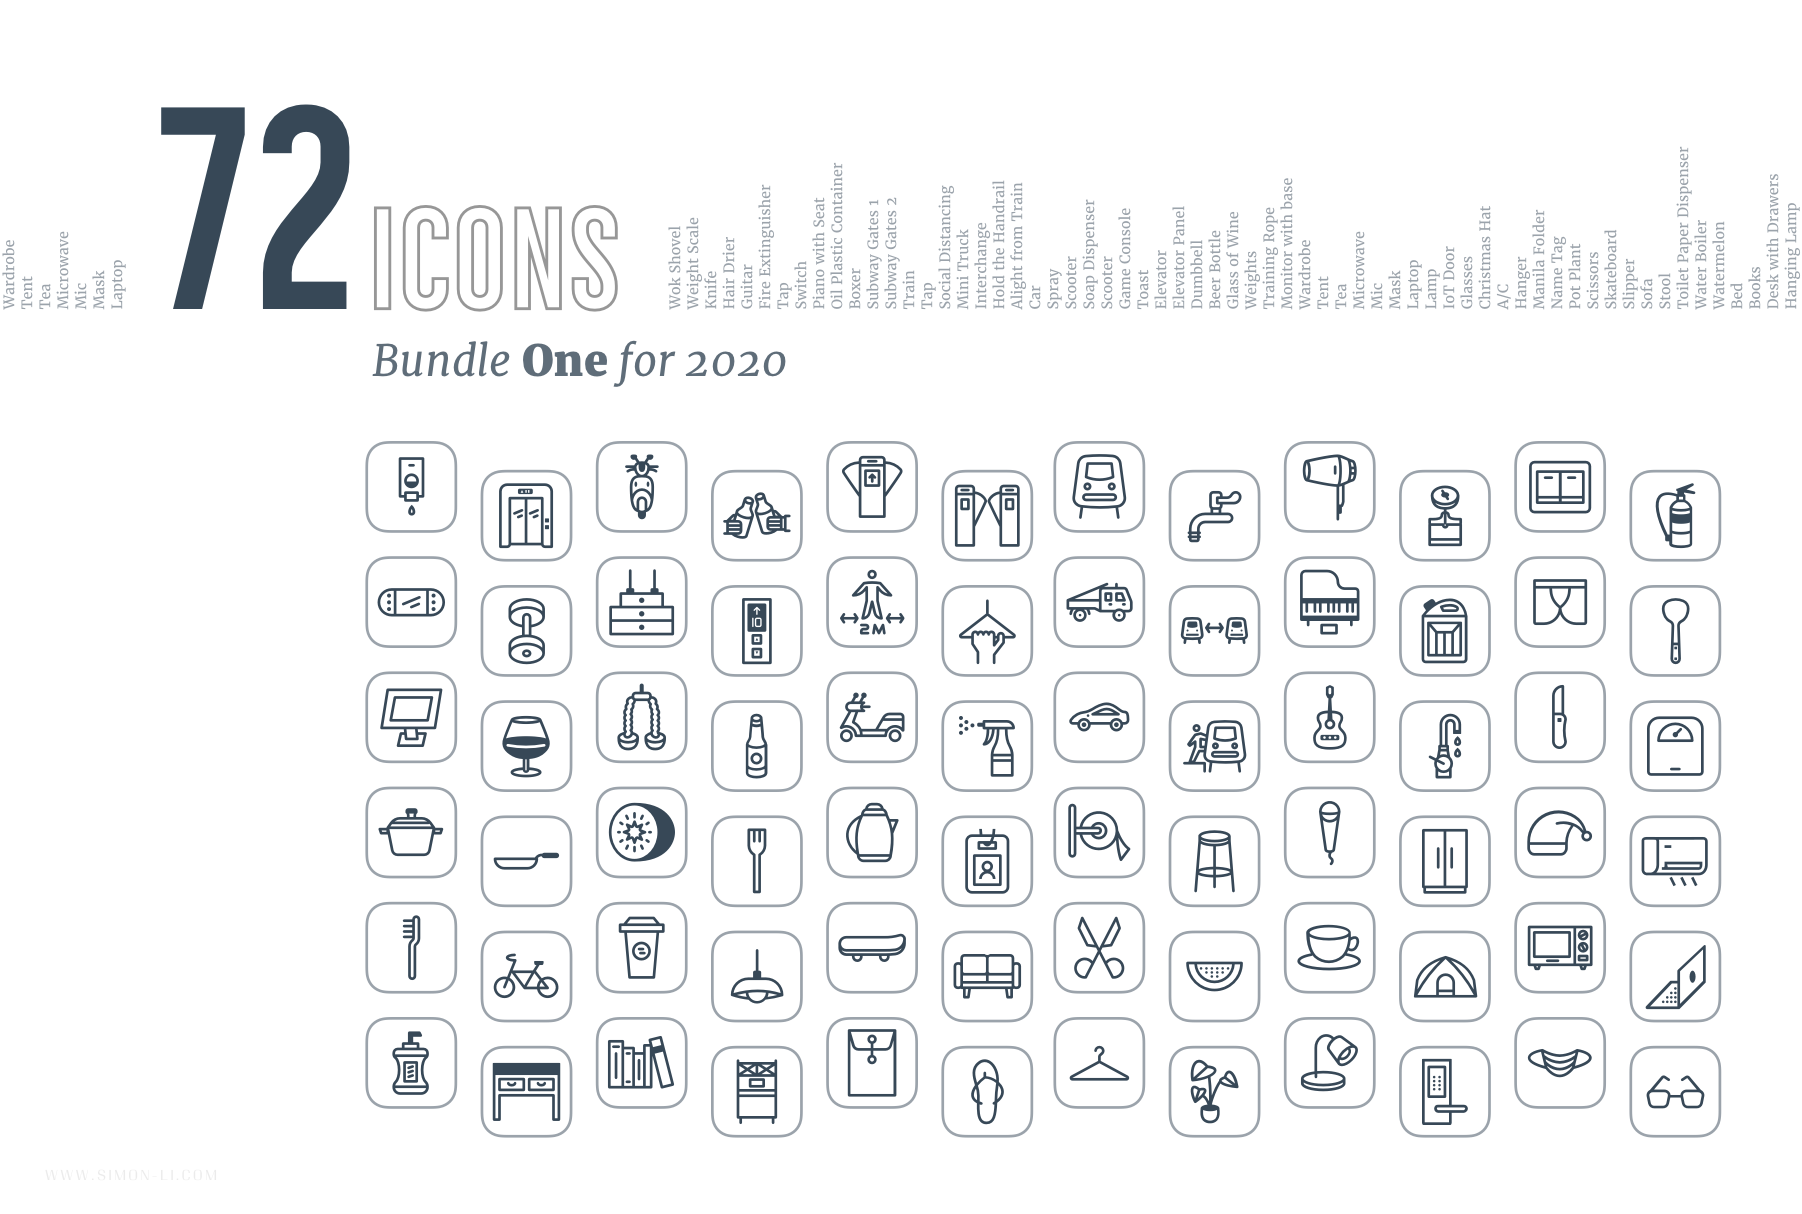 Free Vector Icons – Bundle One for 2020